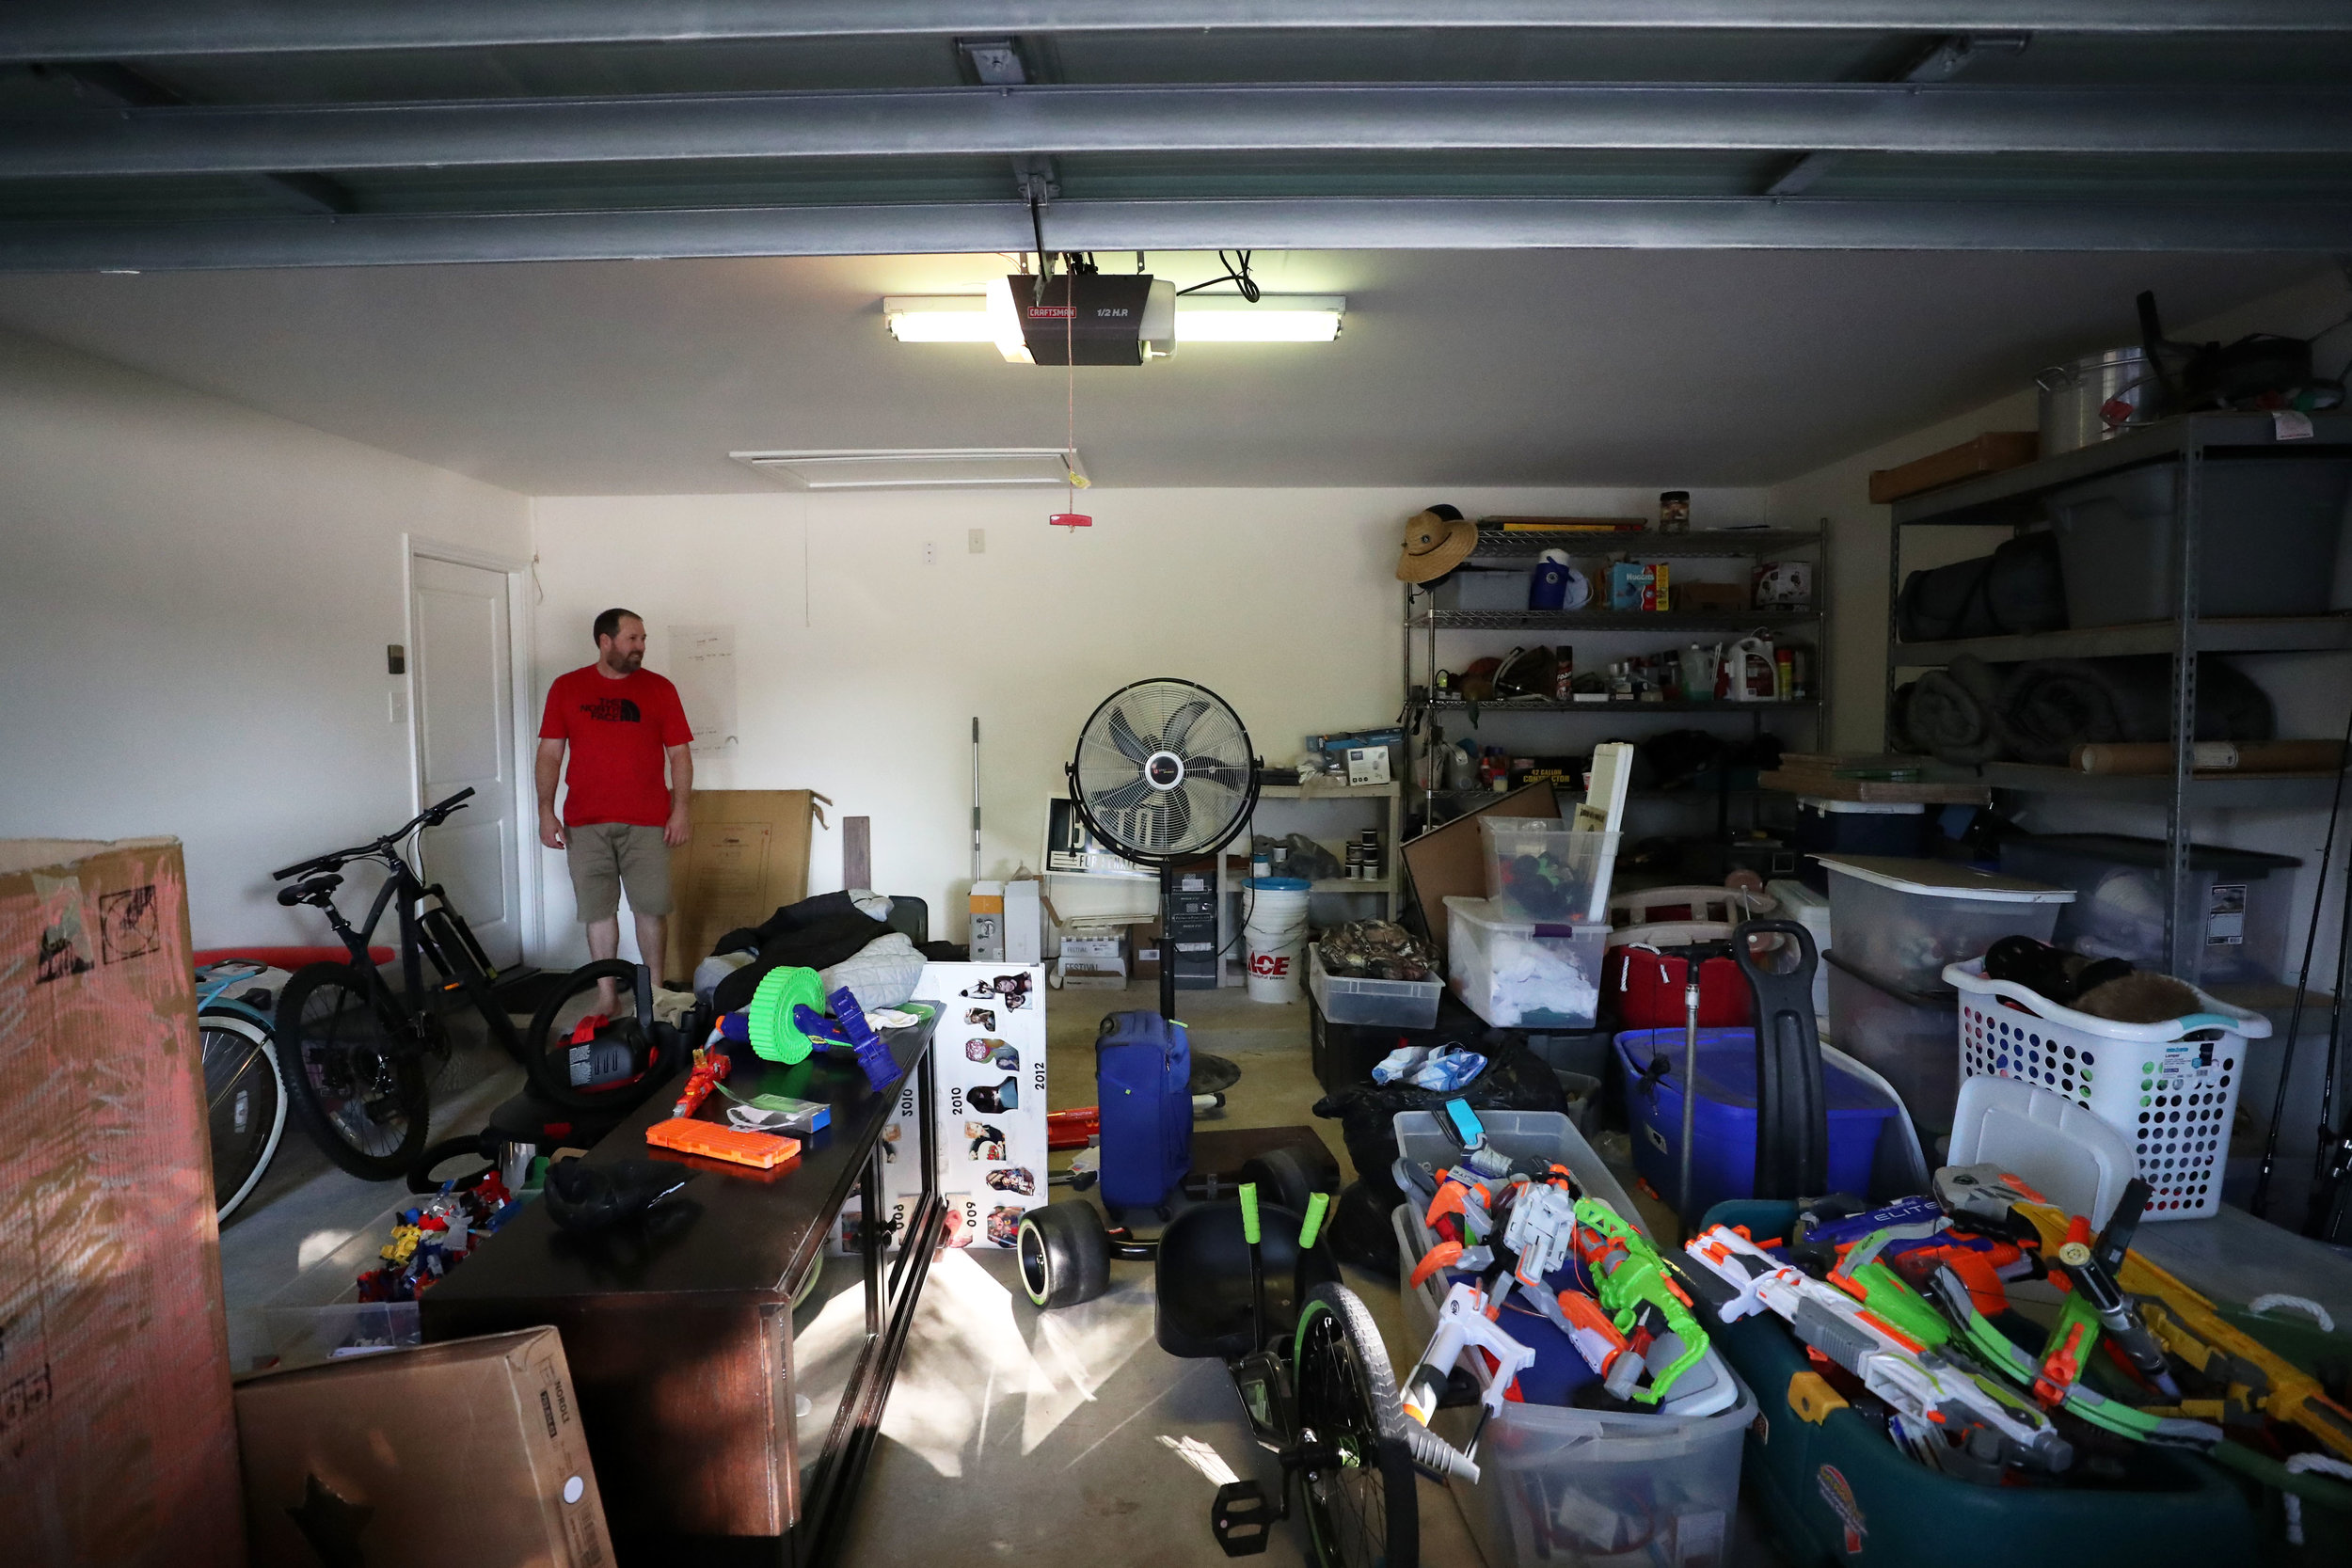 "Jimmy Bishop looks over extra toys, tools, furniture and clothing that not been sorted yet in their garage on Wednesday, July 25, 2018. Jimmy is worried about houses constantly being built around the area without more drainage options being built as well. ""Knowing the process takes that long makes it terrifying for a potential flood,"" Jimmy said. ""But if it does, we are much better prepared with this experience behind us."""